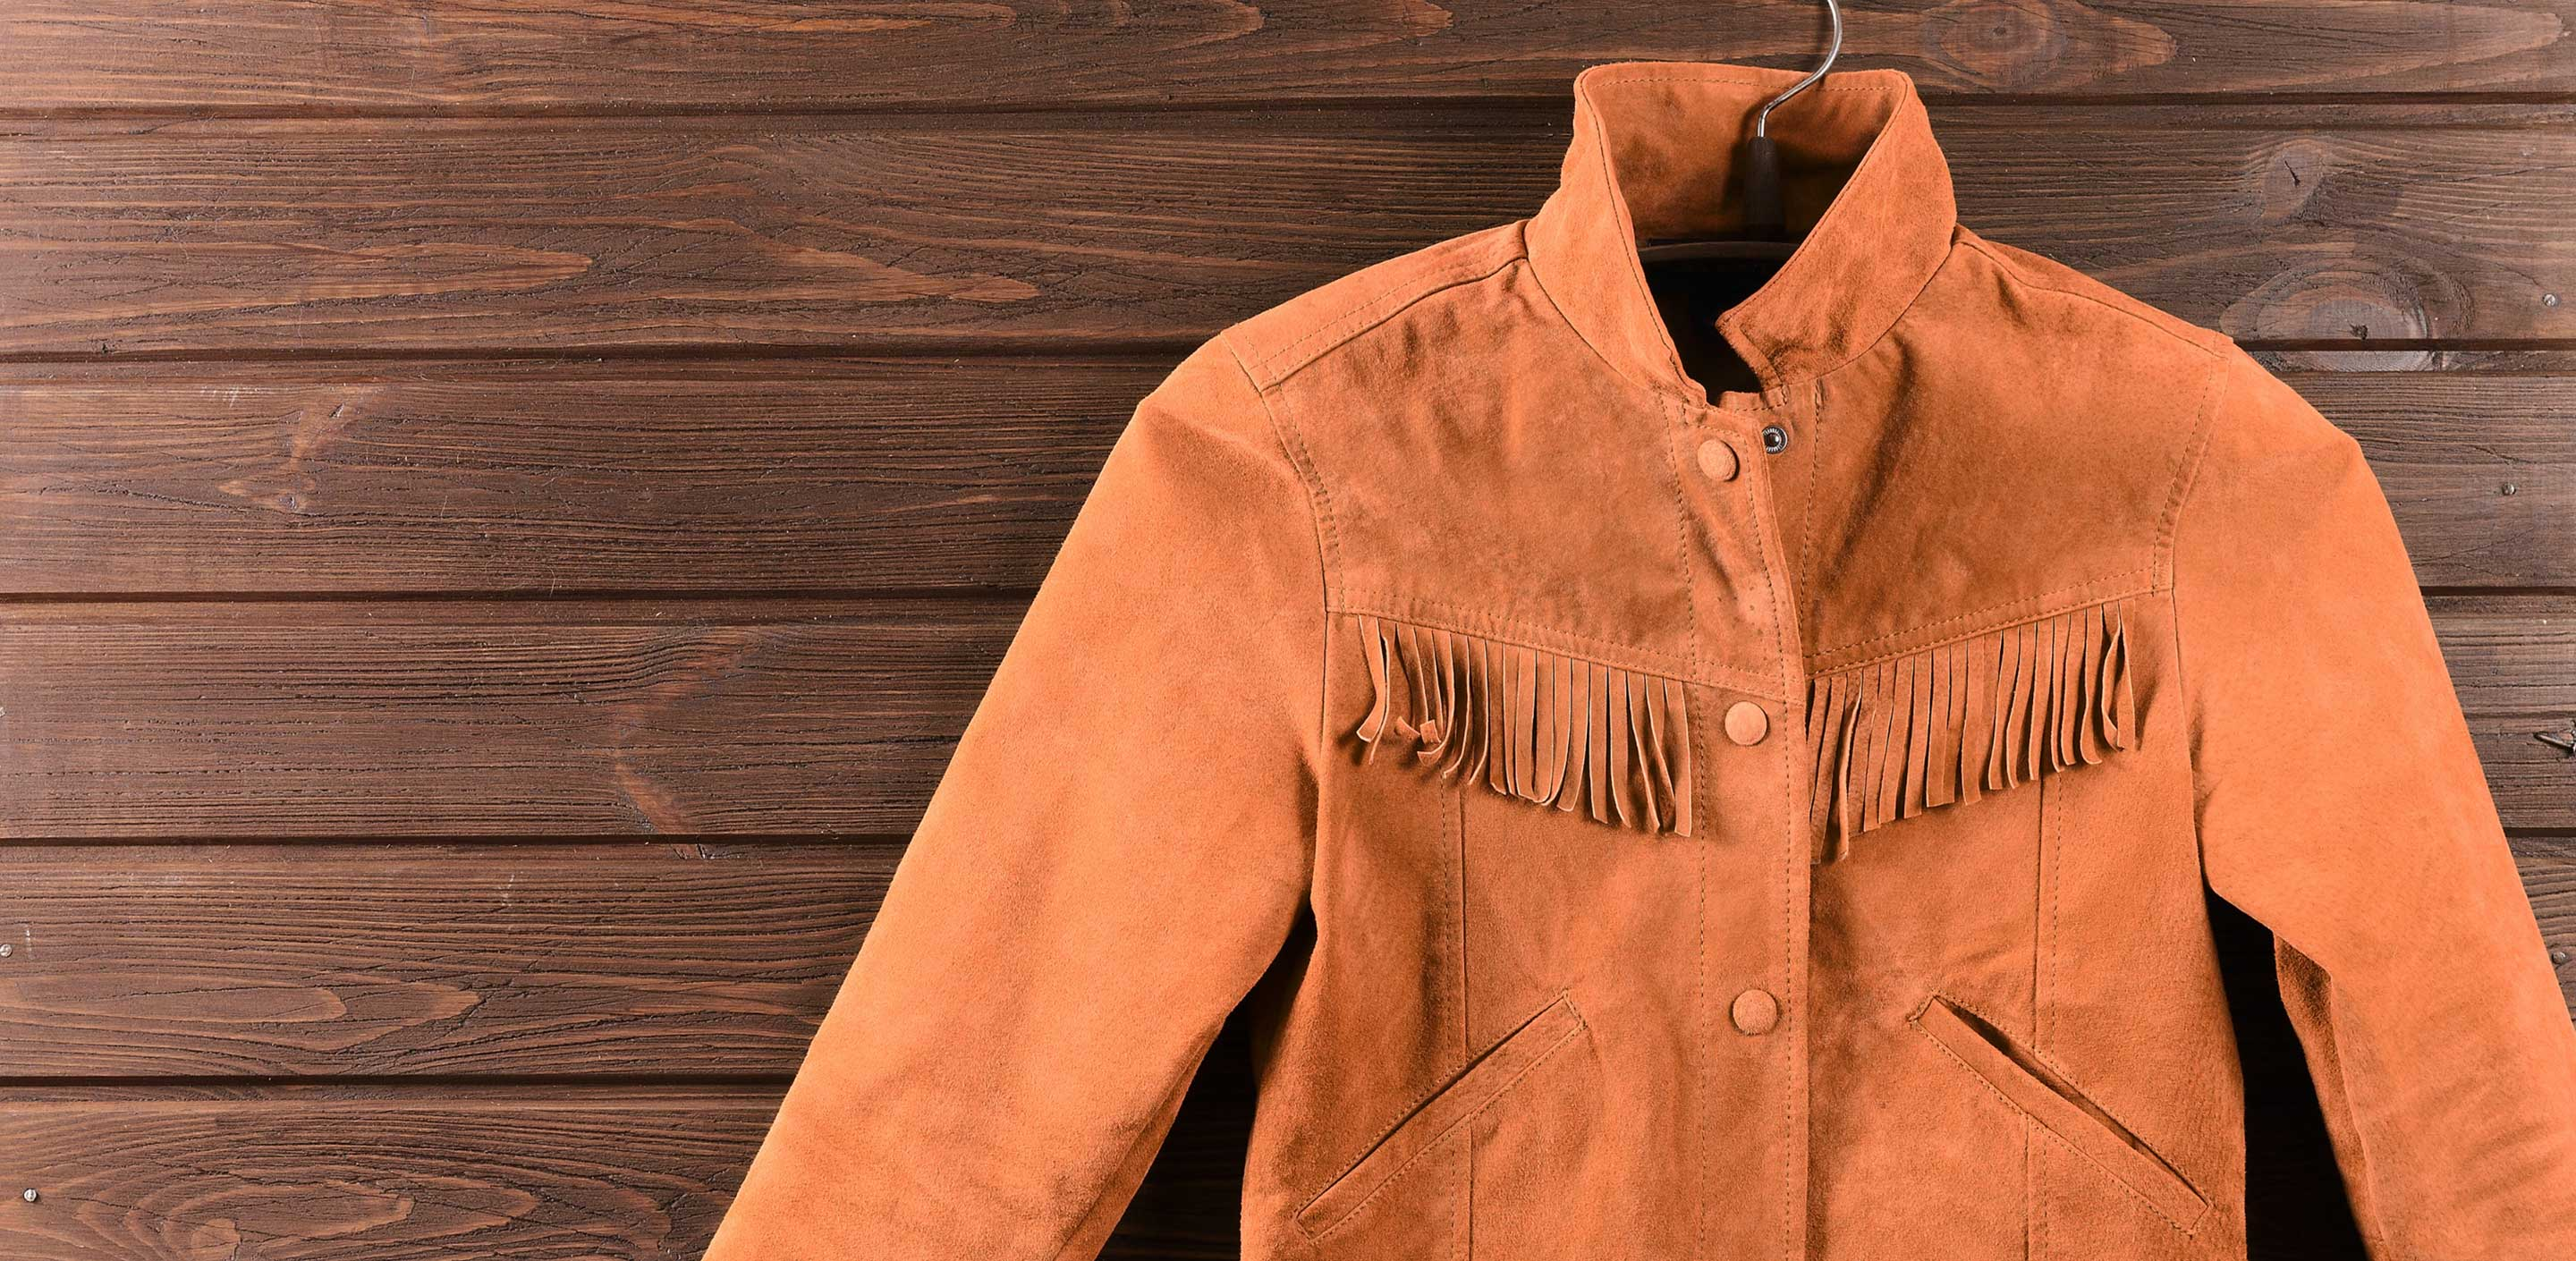 How To Clean Suede Jacket